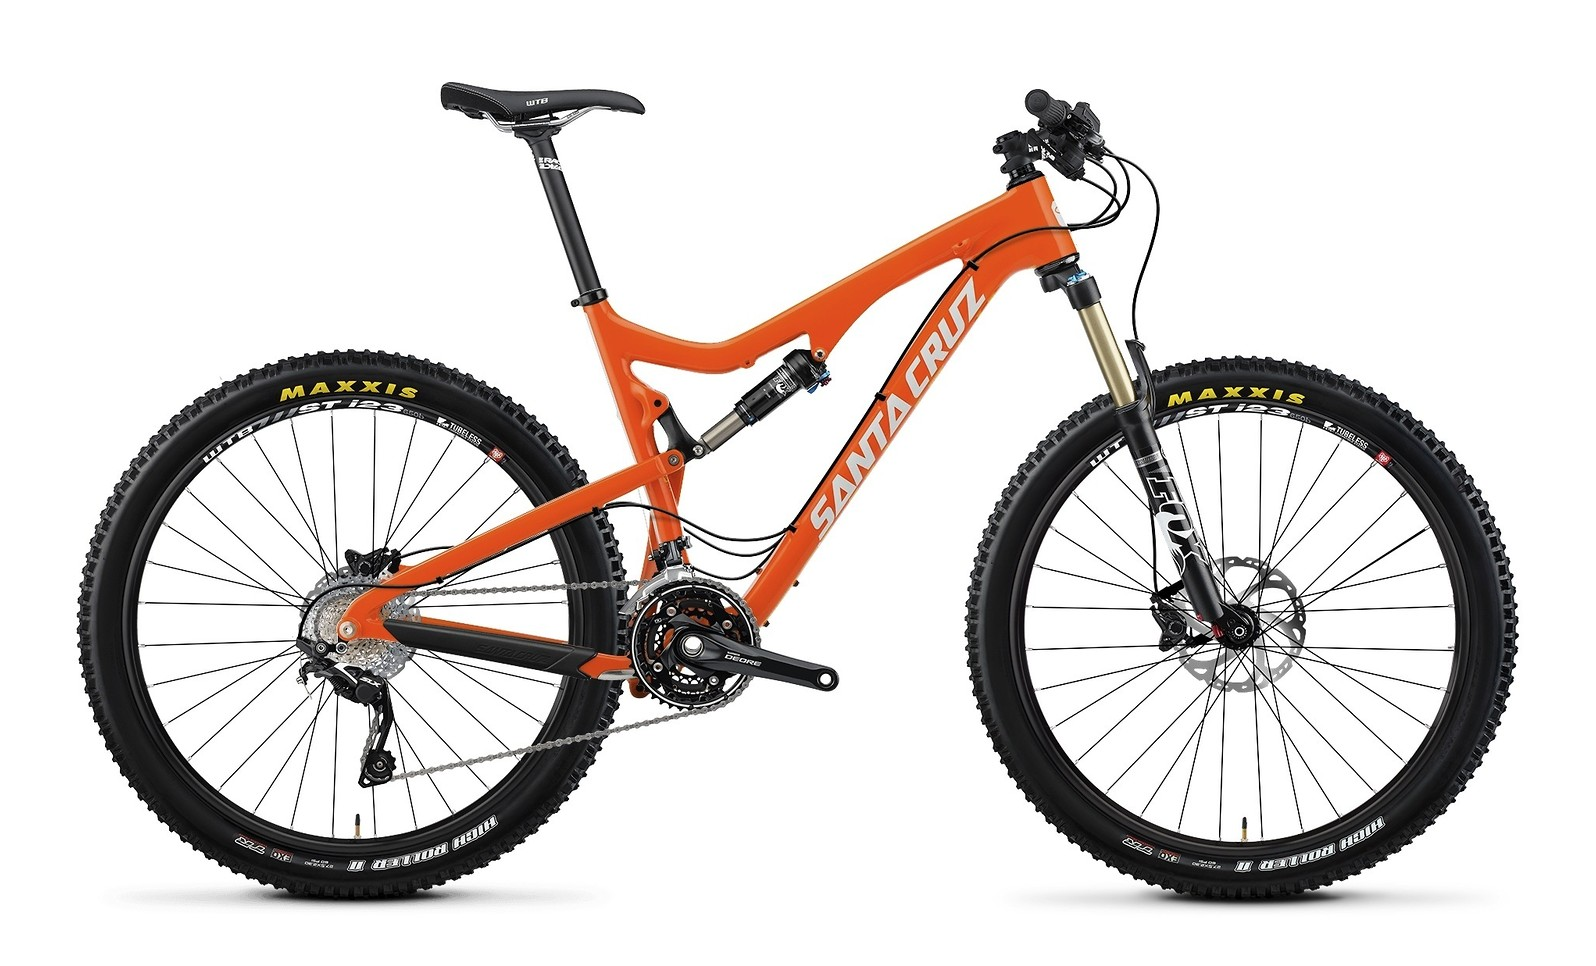 2014 Santa Cruz 5010 Carbon R AM 27.5 Bike 2014 Santa Cruz Solo Carbon R AM 27.5 Bike - orange